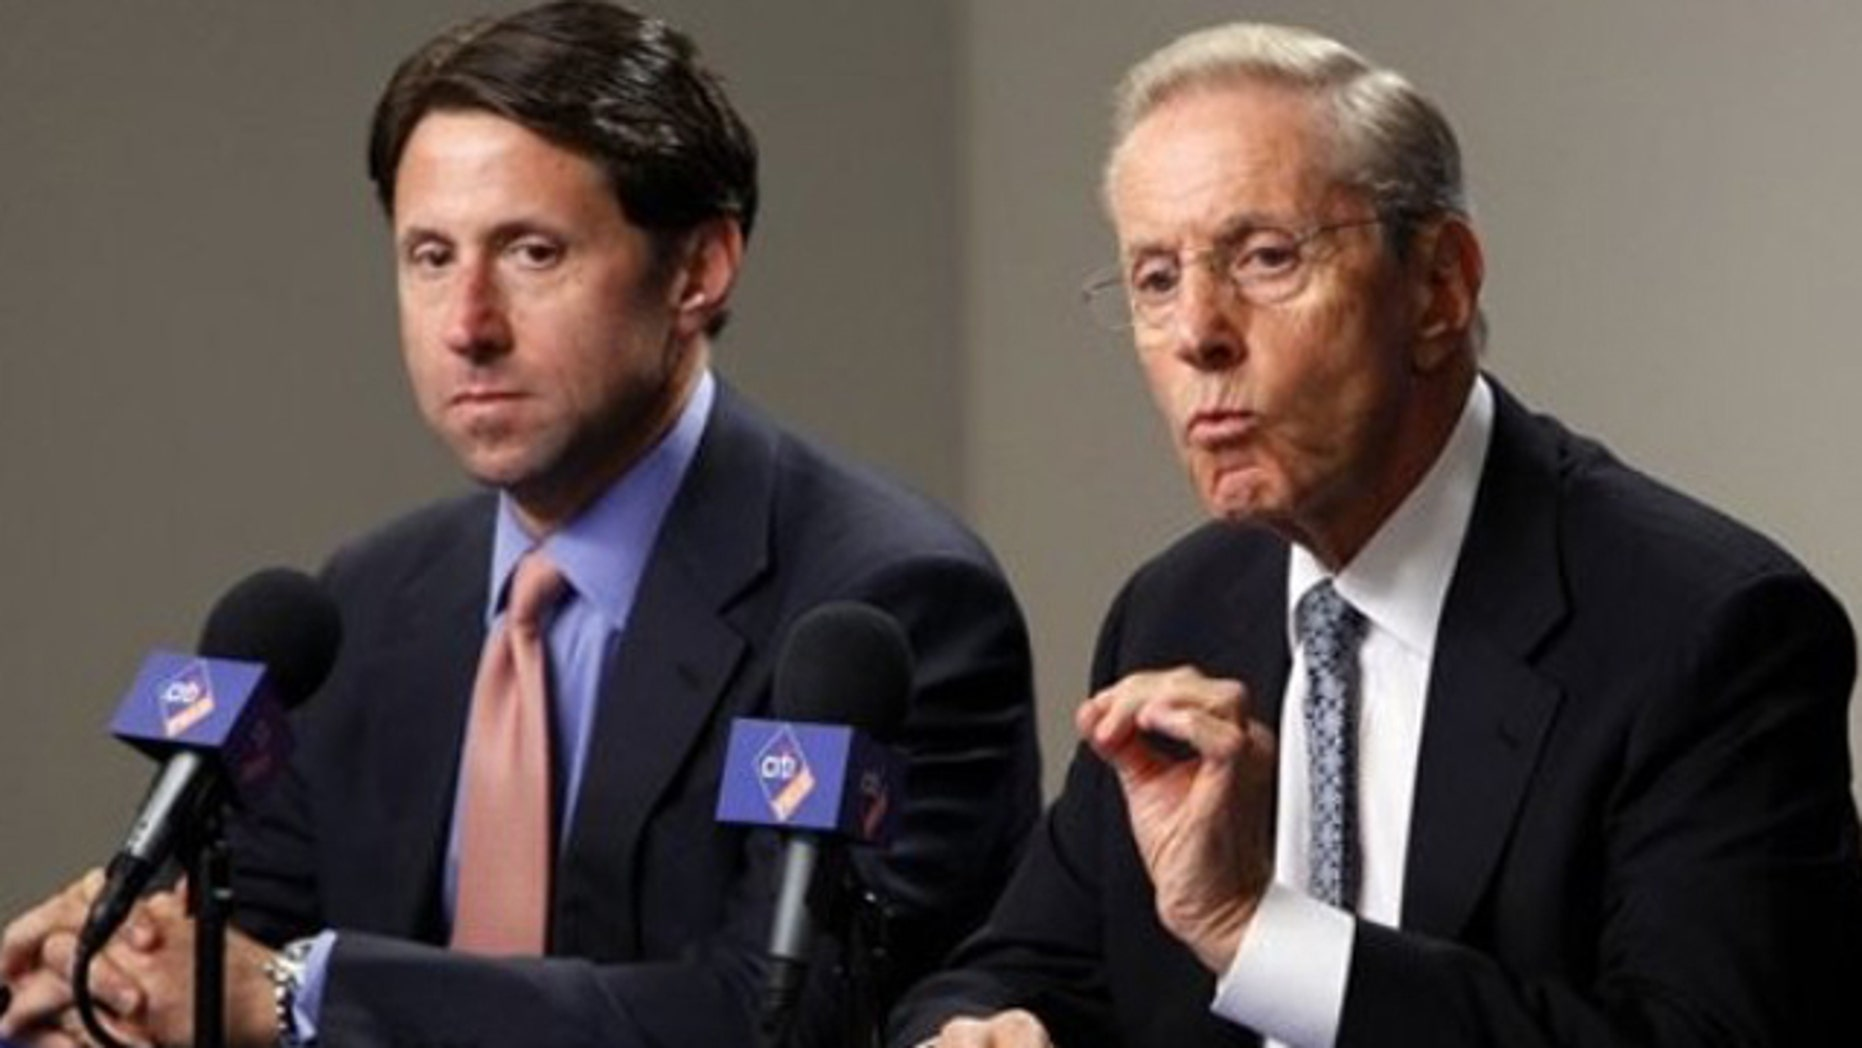 Oct. 4, 2010: New York Mets owner and CEO Fred Wilpon, right, and COO Jeff Wilpon speak to the media during a news conference at Citi Field in New York.